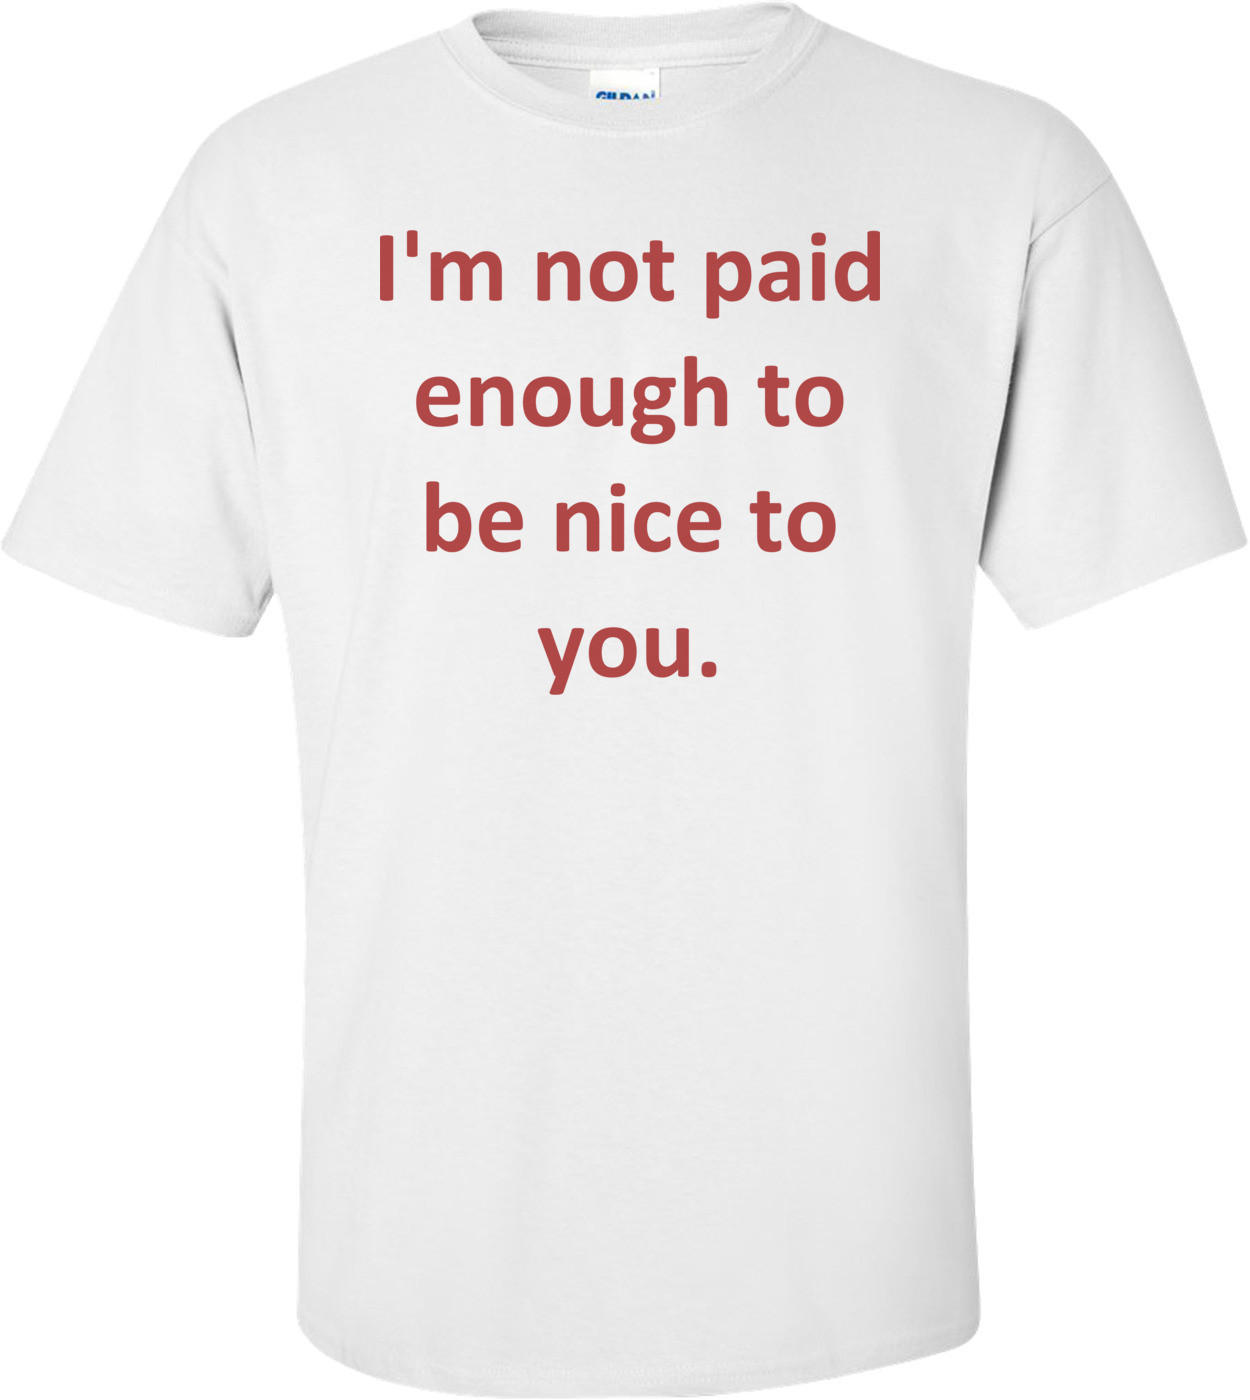 I'm not paid enough to be nice to you. Shirt